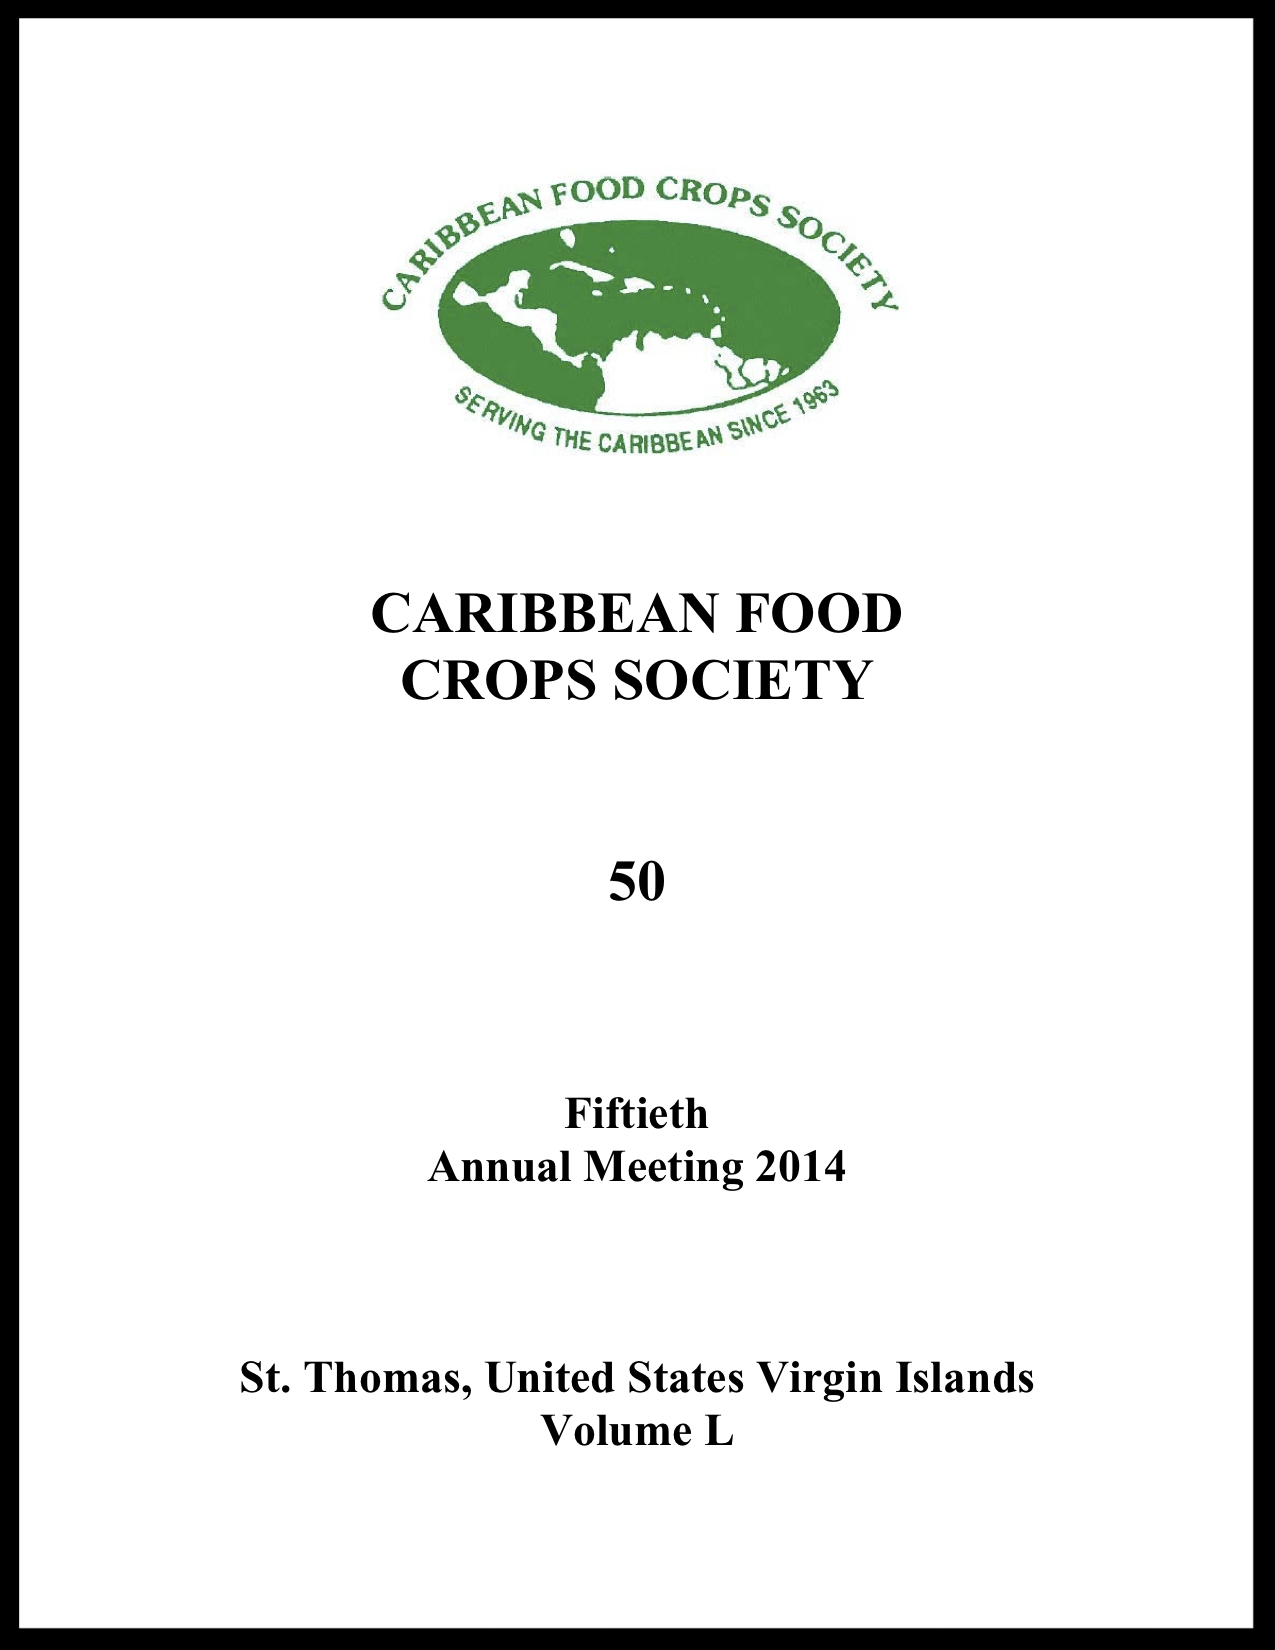 2014, Vol. 50, St. Thomas, USVI